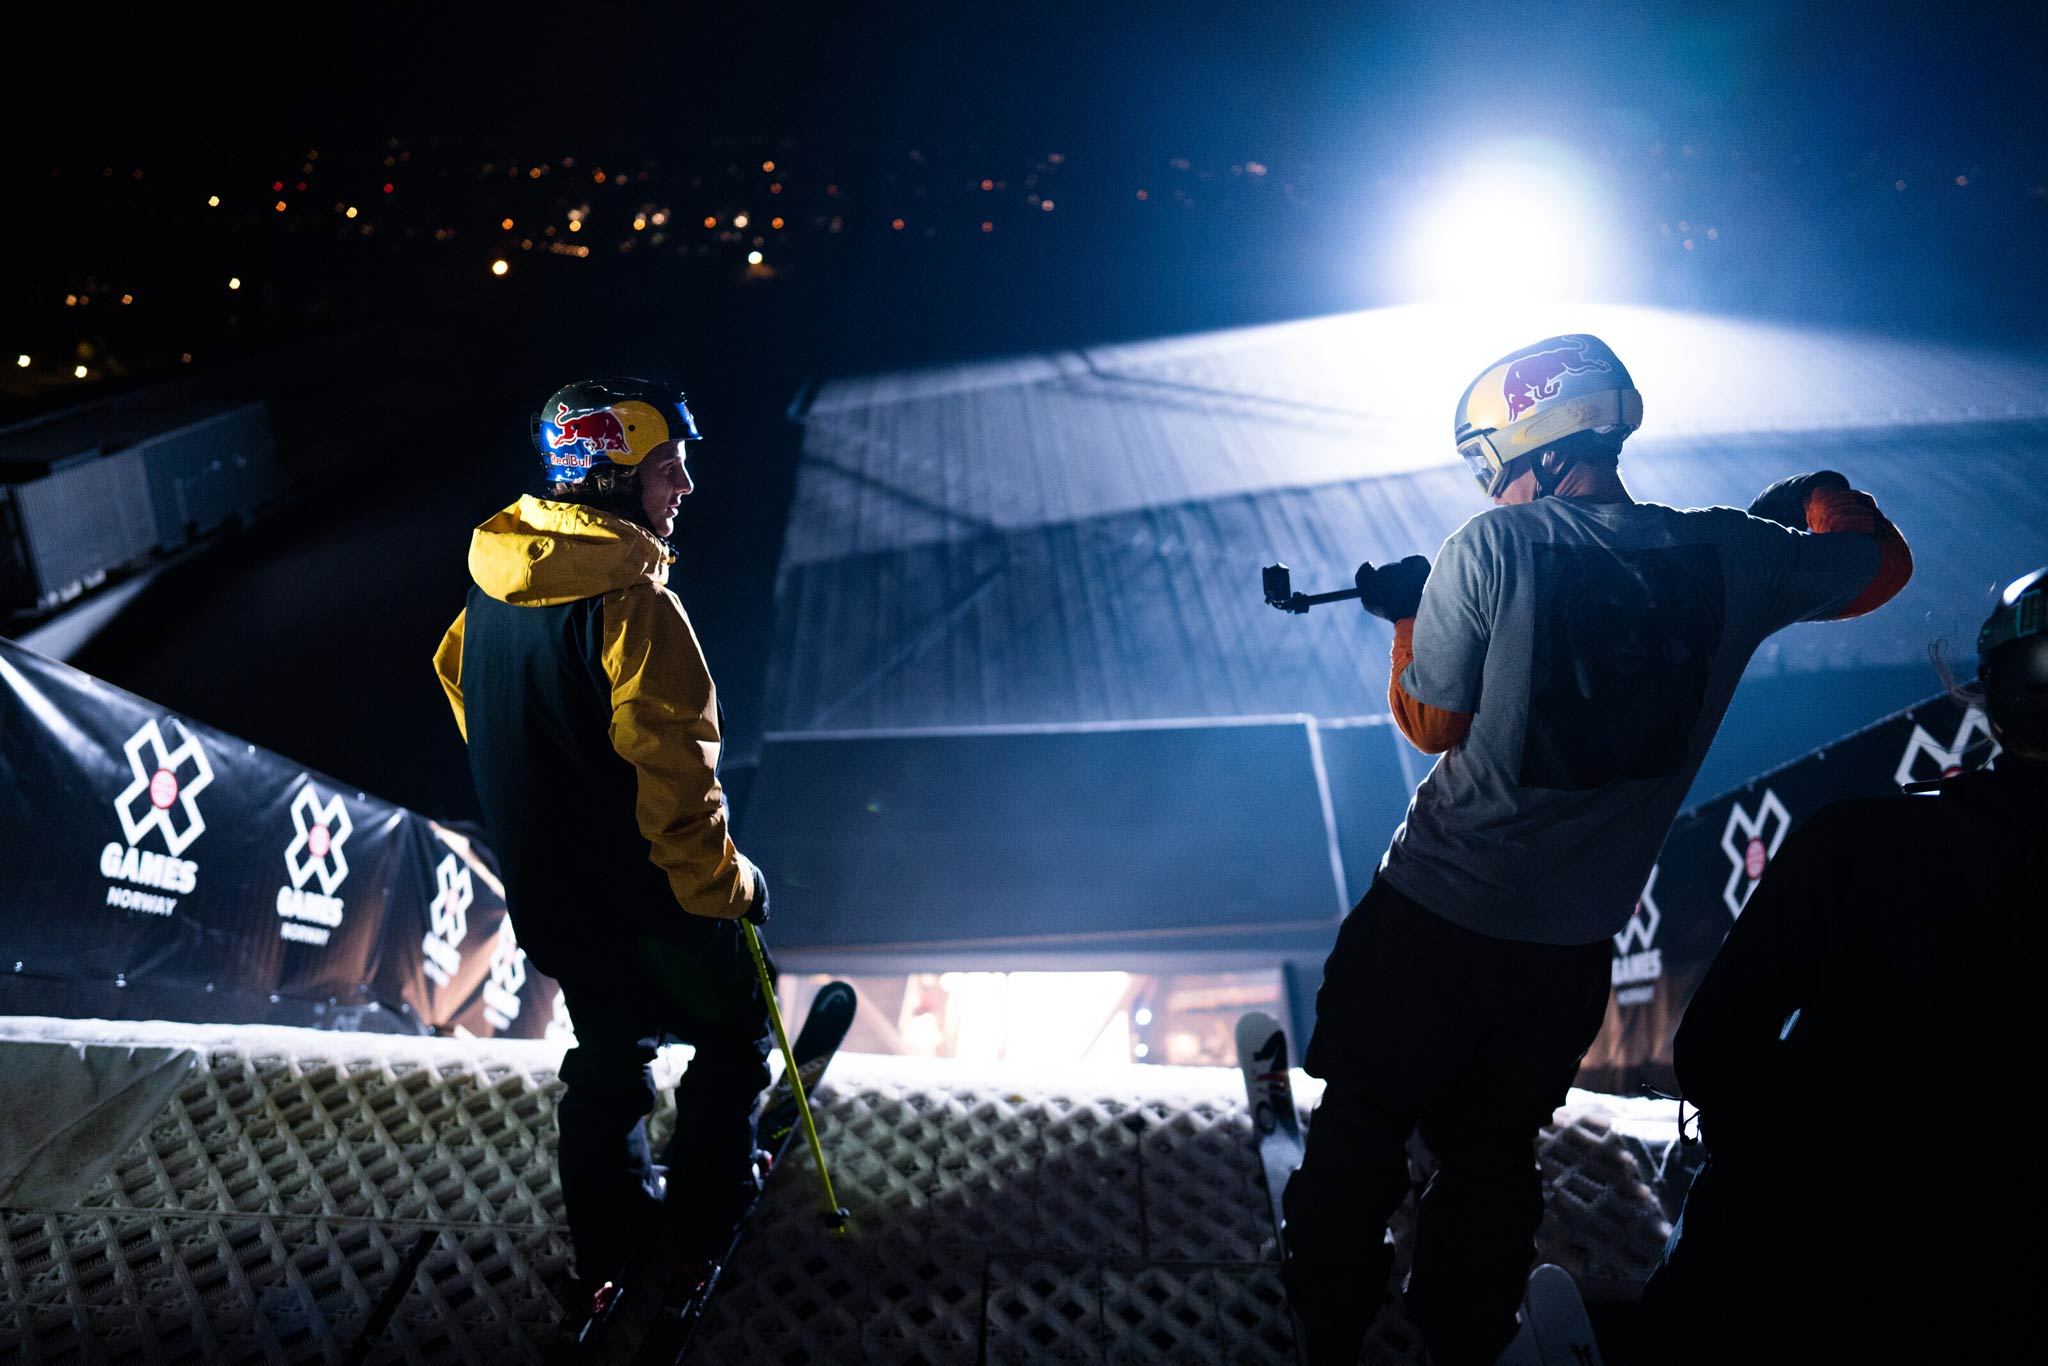 X Games Norwegen 2019 – Bildergalerie